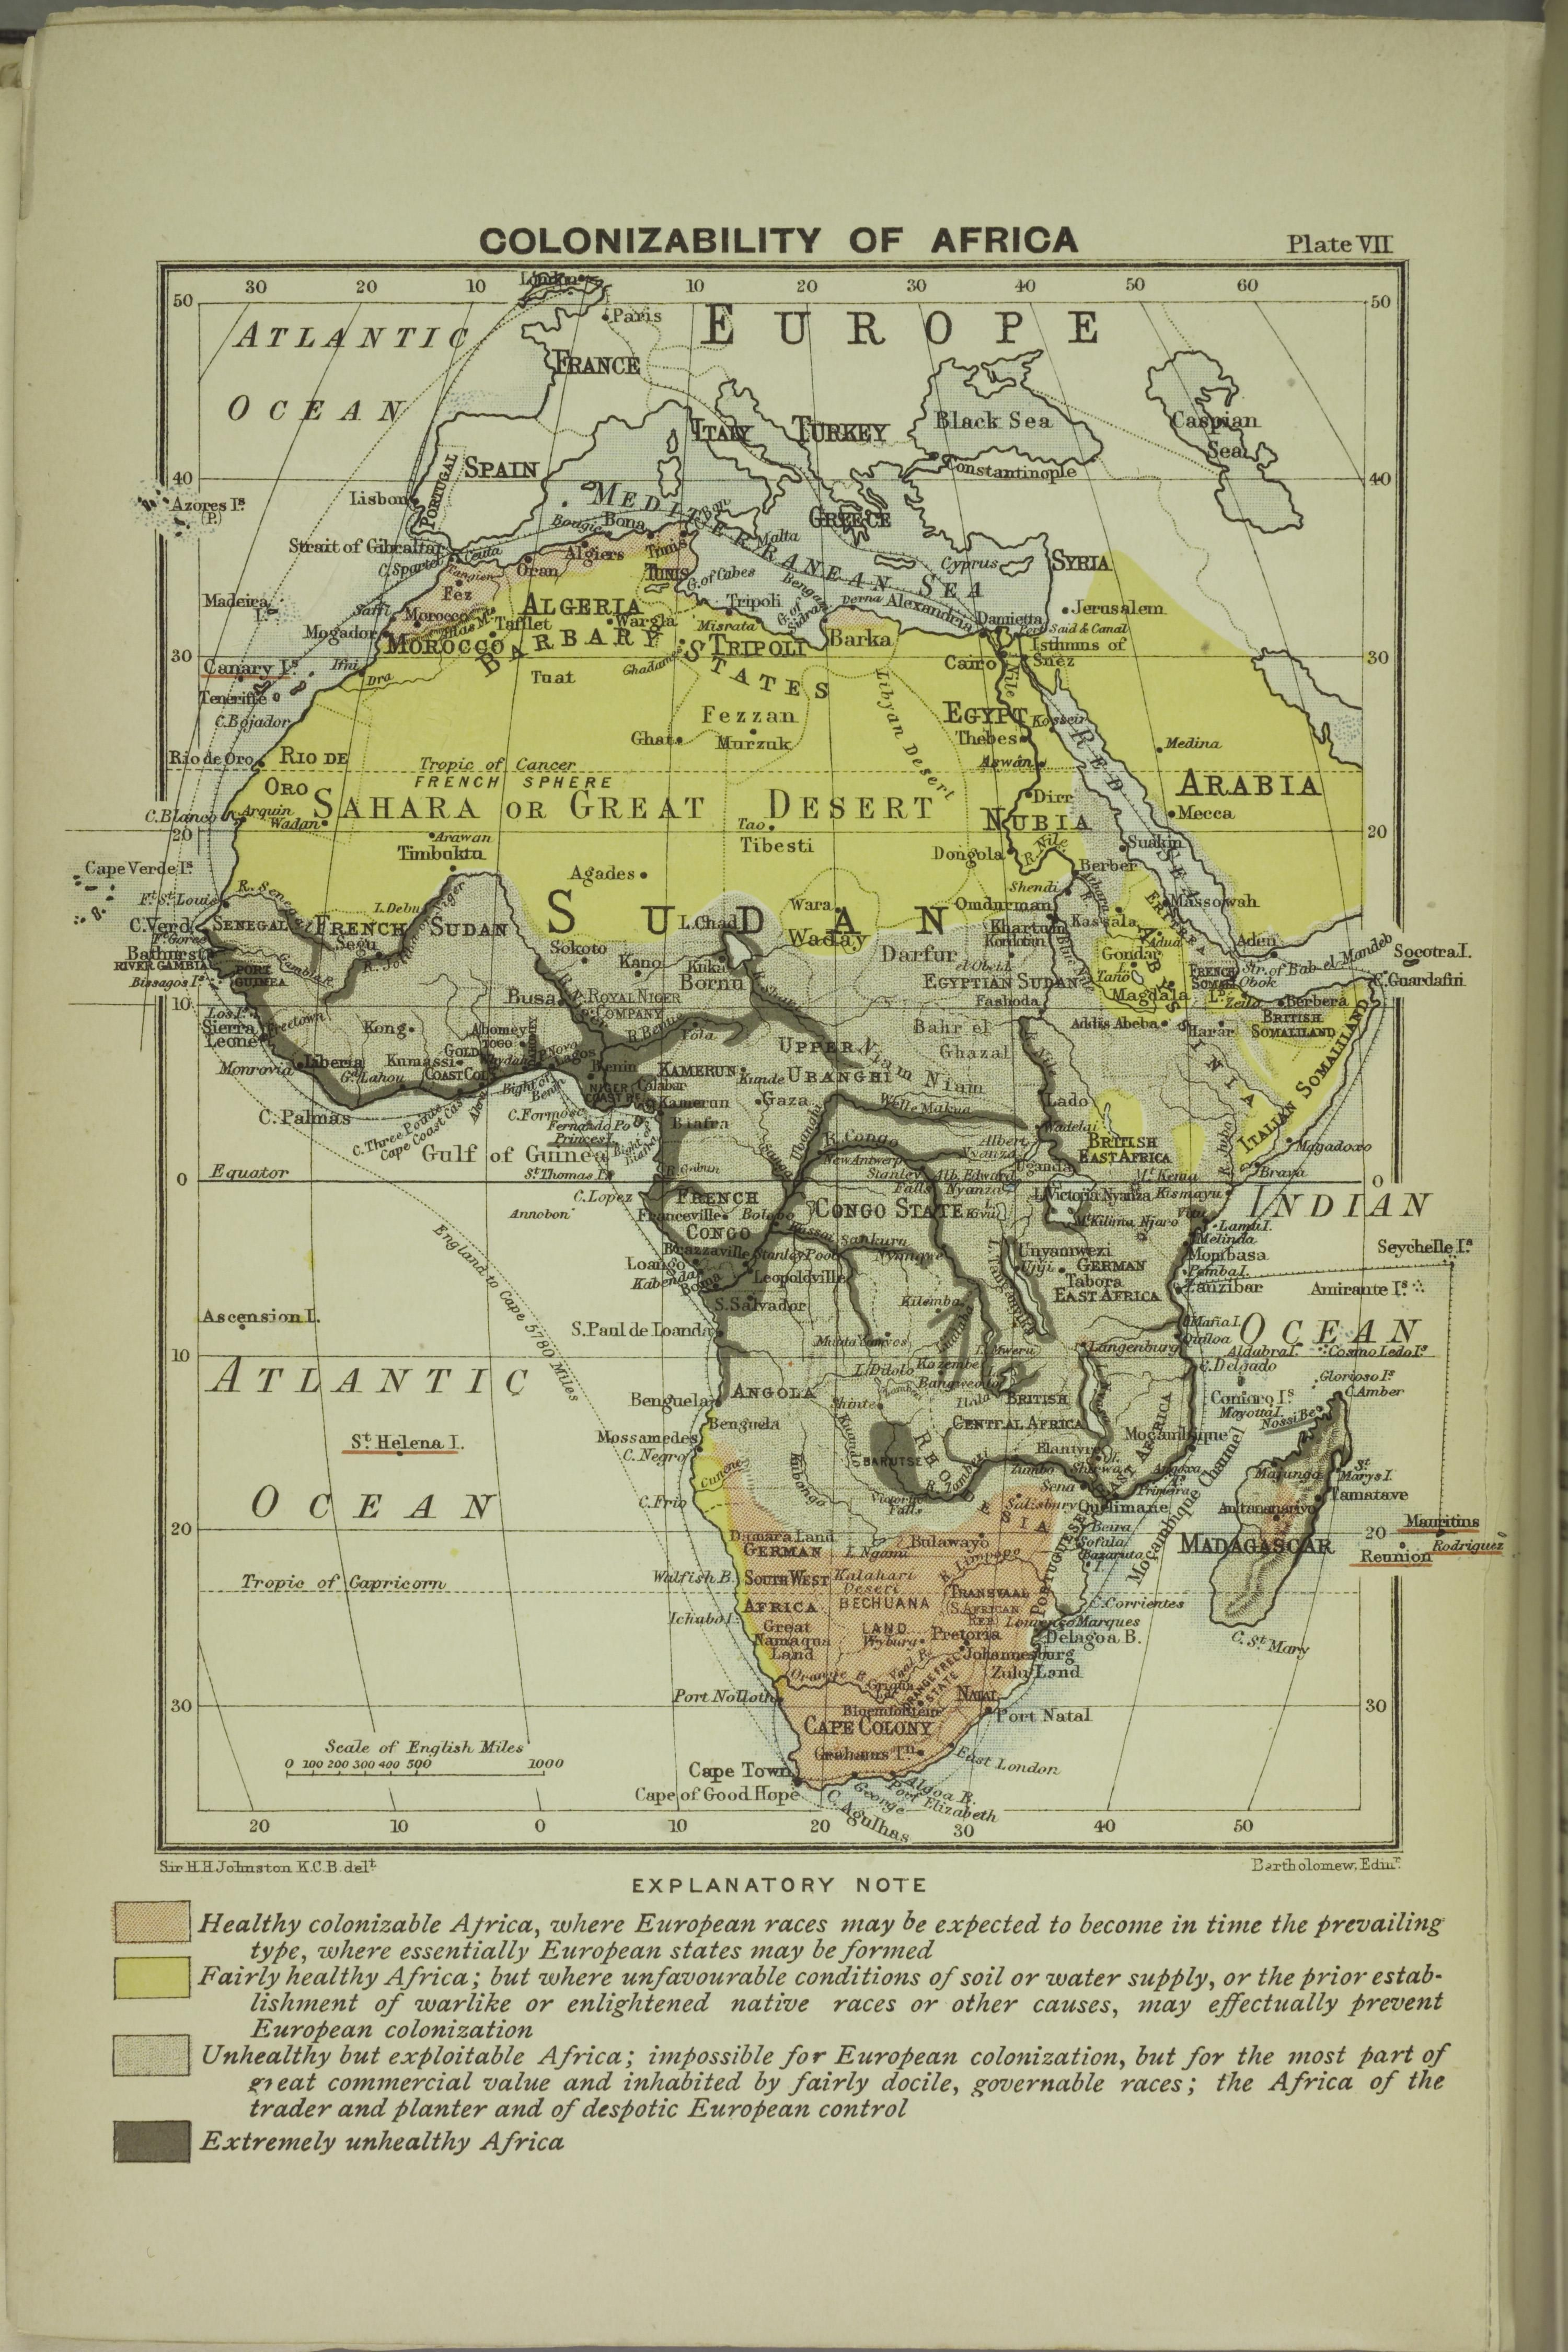 19th Century Africa Map.Colonizability Of Africa By J G Bartholomew 1899 Mapmania